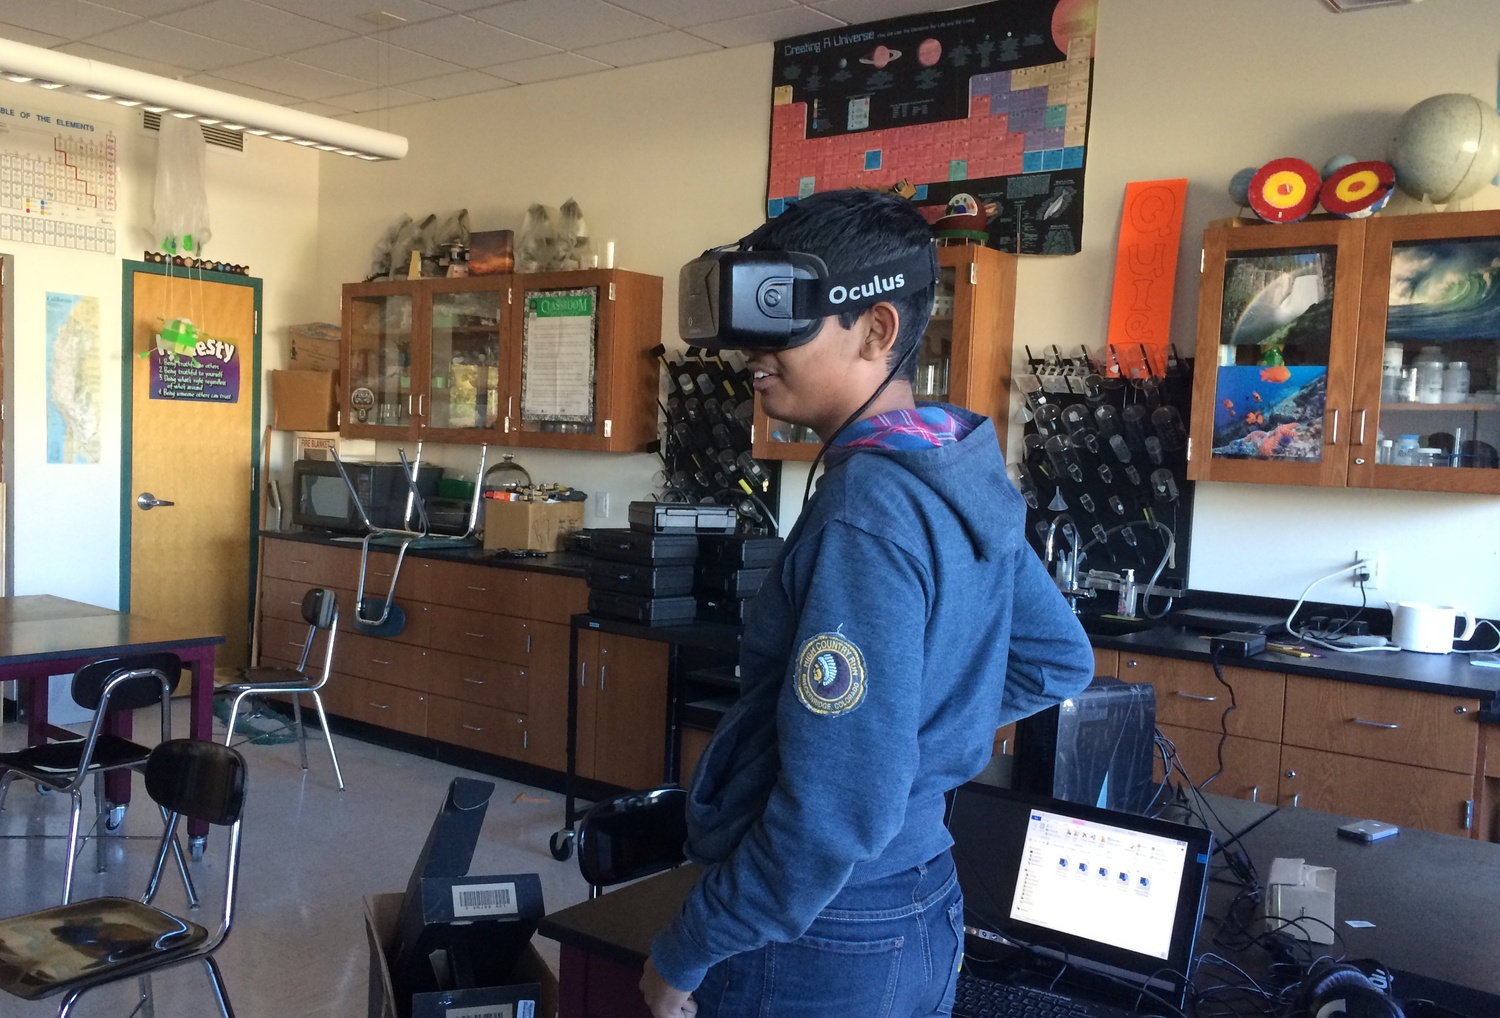 A student tries on a virtual reality headset, as a part of Dreamporte. Dreamporte is a student group at Harvard that aims to bring virtual reality into classrooms at middle schools.